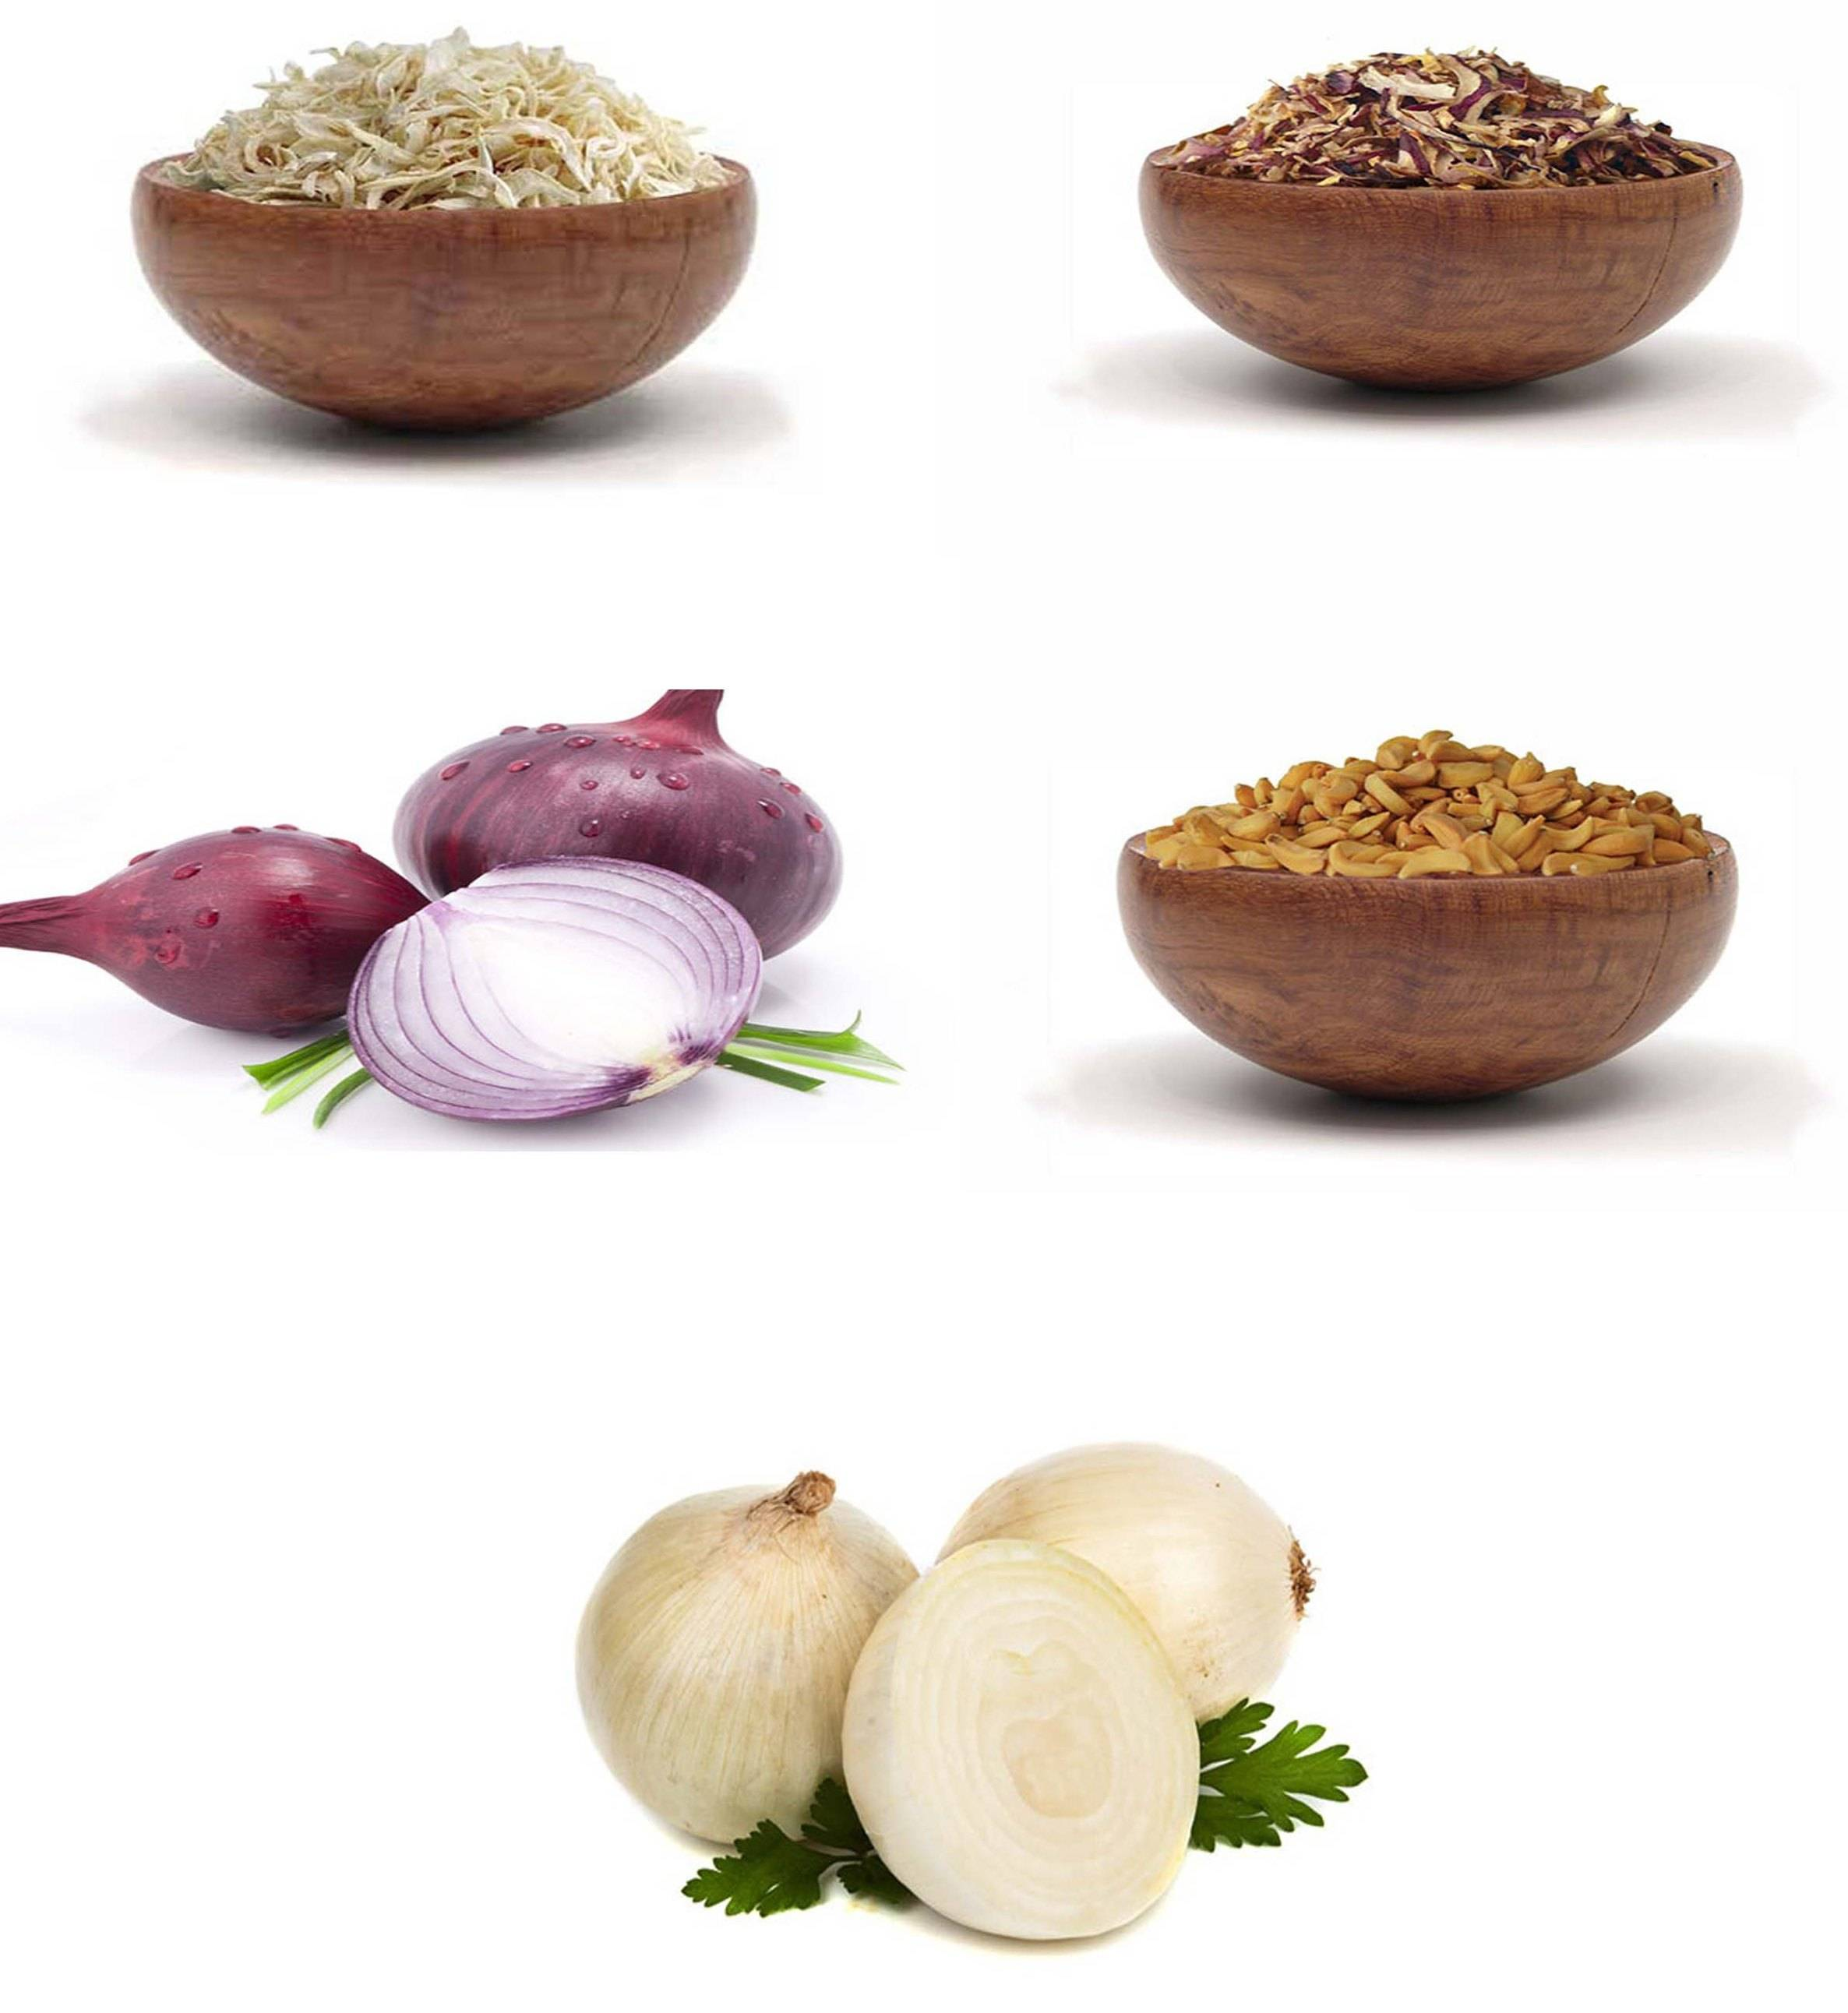 inquiry for Dehydrated Onion and Garlic